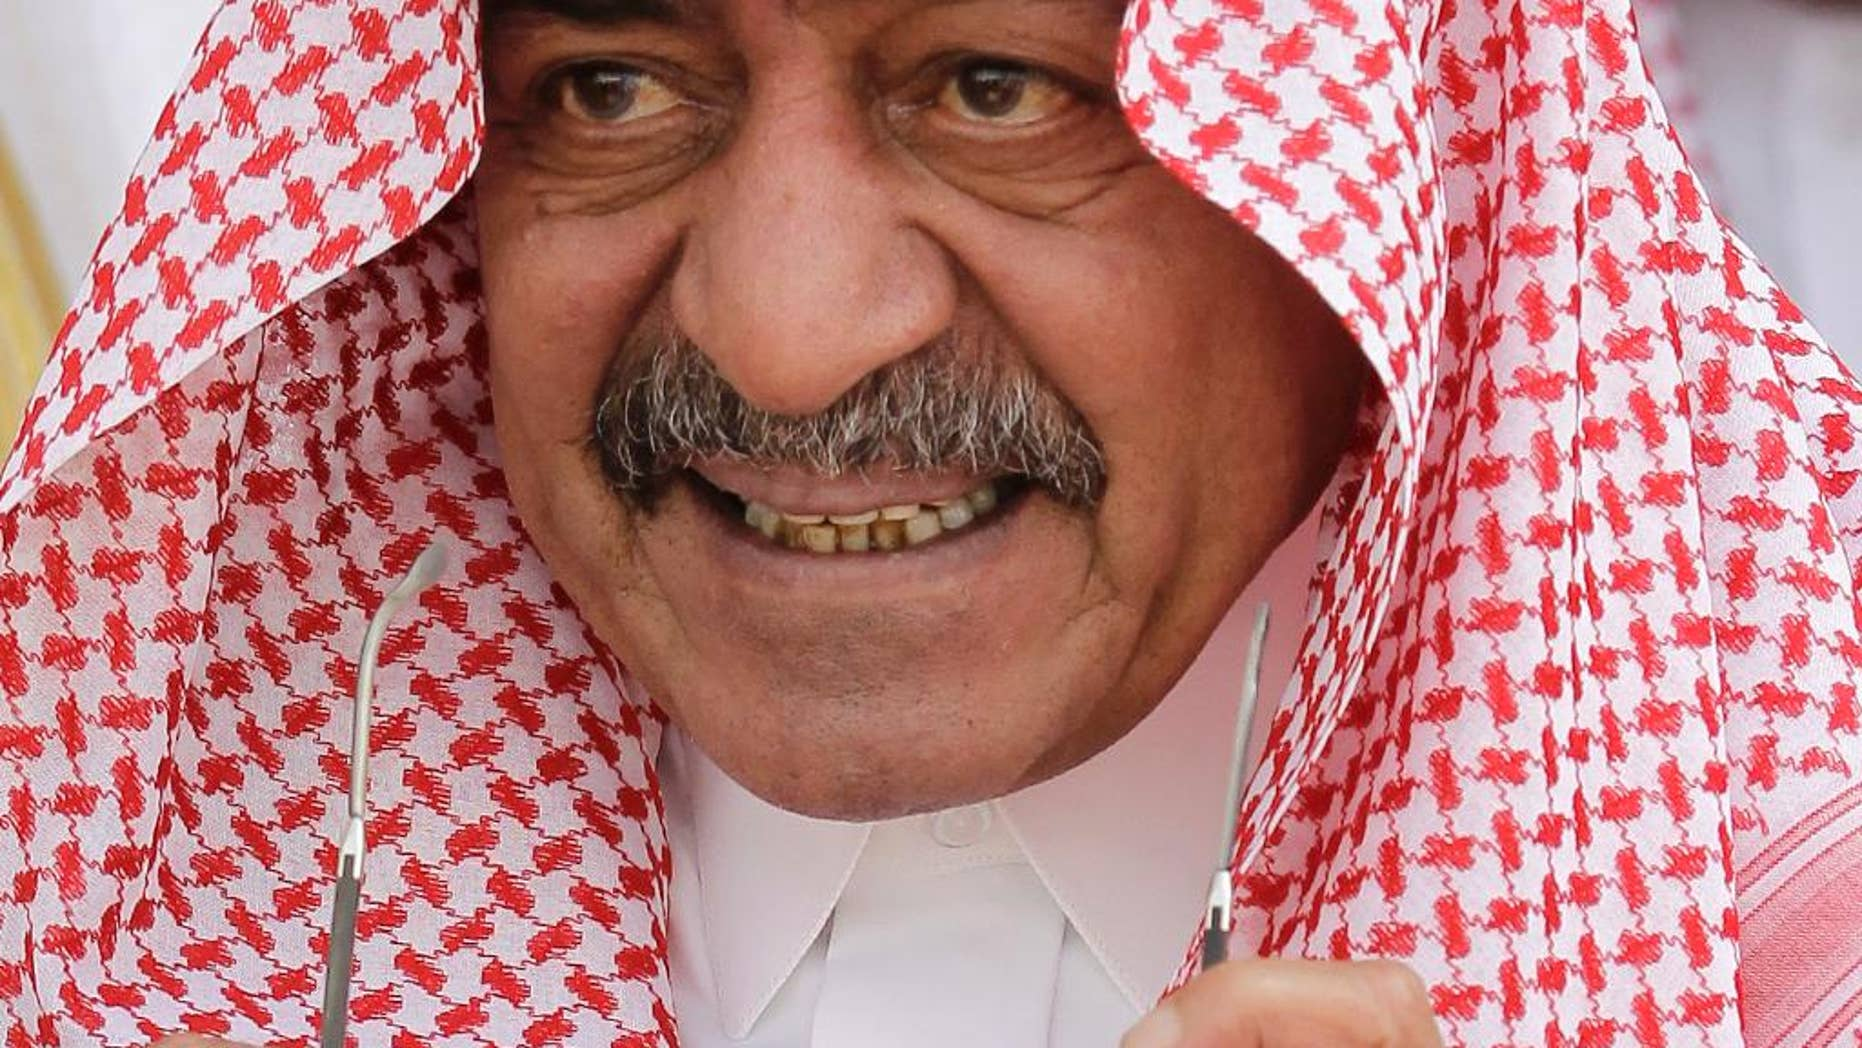 In this Monday, May 14, 2012 photo, Prince Muqrin bin Abdulaziz is seen at at Riyadh Base in Riyadh, Saudi Arabia. The Saudi Royal Court has announced Thursday, March 27, 2014 that King Abdullah's son, Prince Muqrin has been named deputy crown prince, a move that sets out clearly his place as second-in-line to the thrown after the crown prince. The statement says Muqrin bin Abdulaziz, who once headed the kingdom's intelligence agency and is the king's youngest son, will retain his title as second deputy prime minister and adviser to his father.(AP Photo/Hassan Ammar, File)